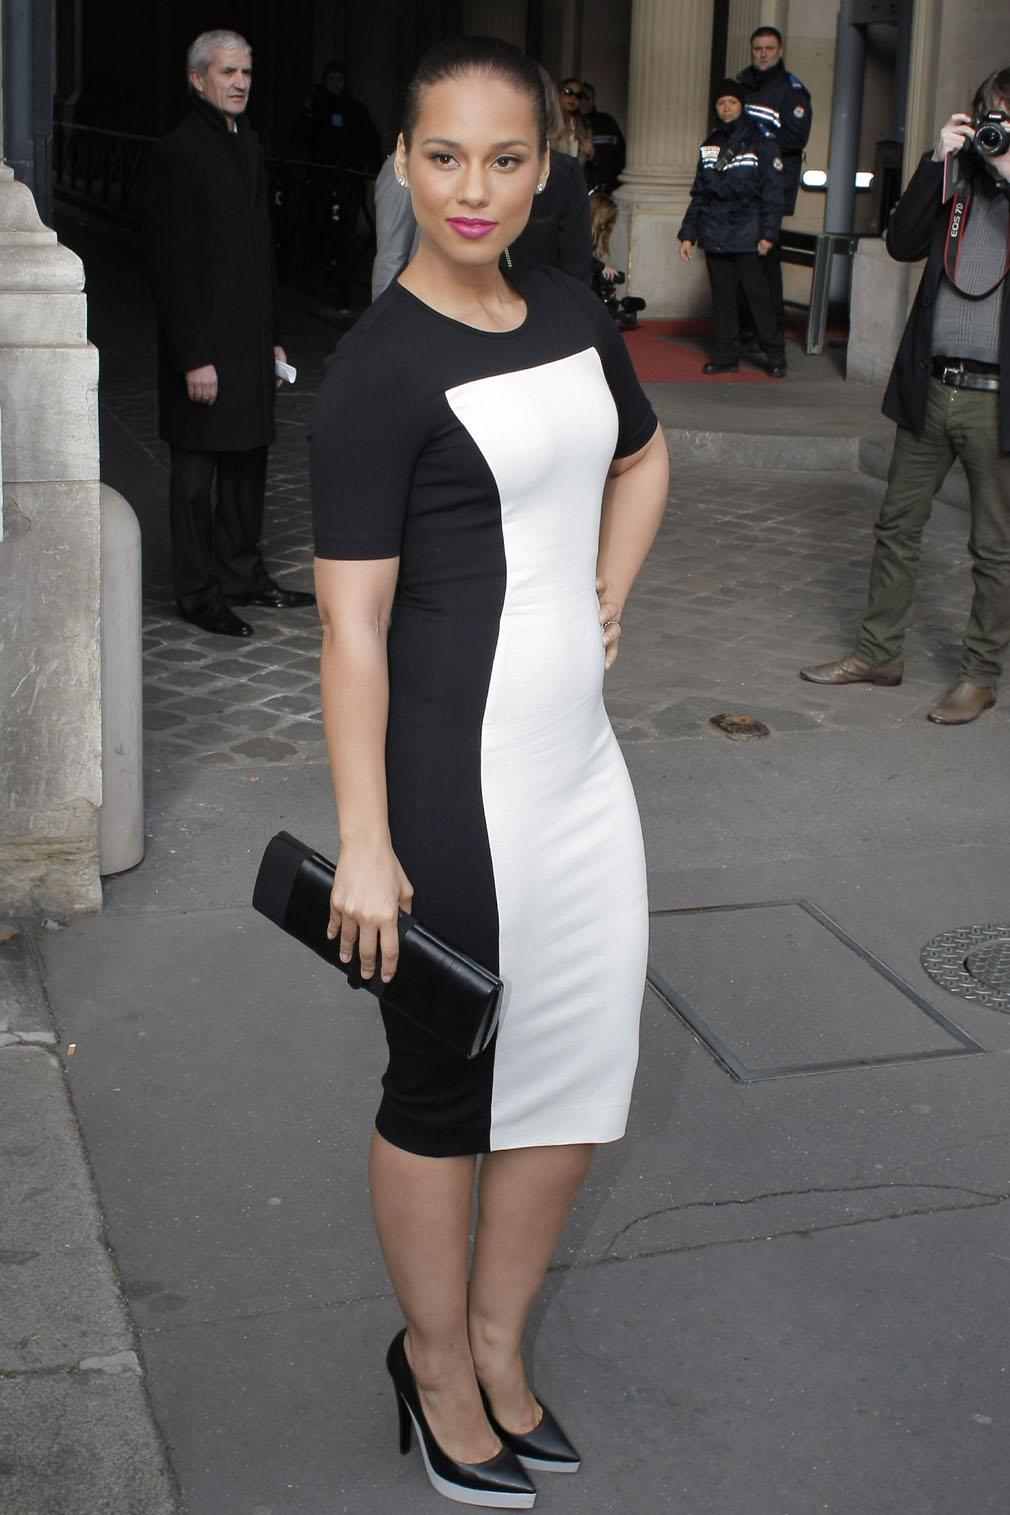 Alicia-Keys-Arrived-At-The-Stella-McCartney-Fashion-Show